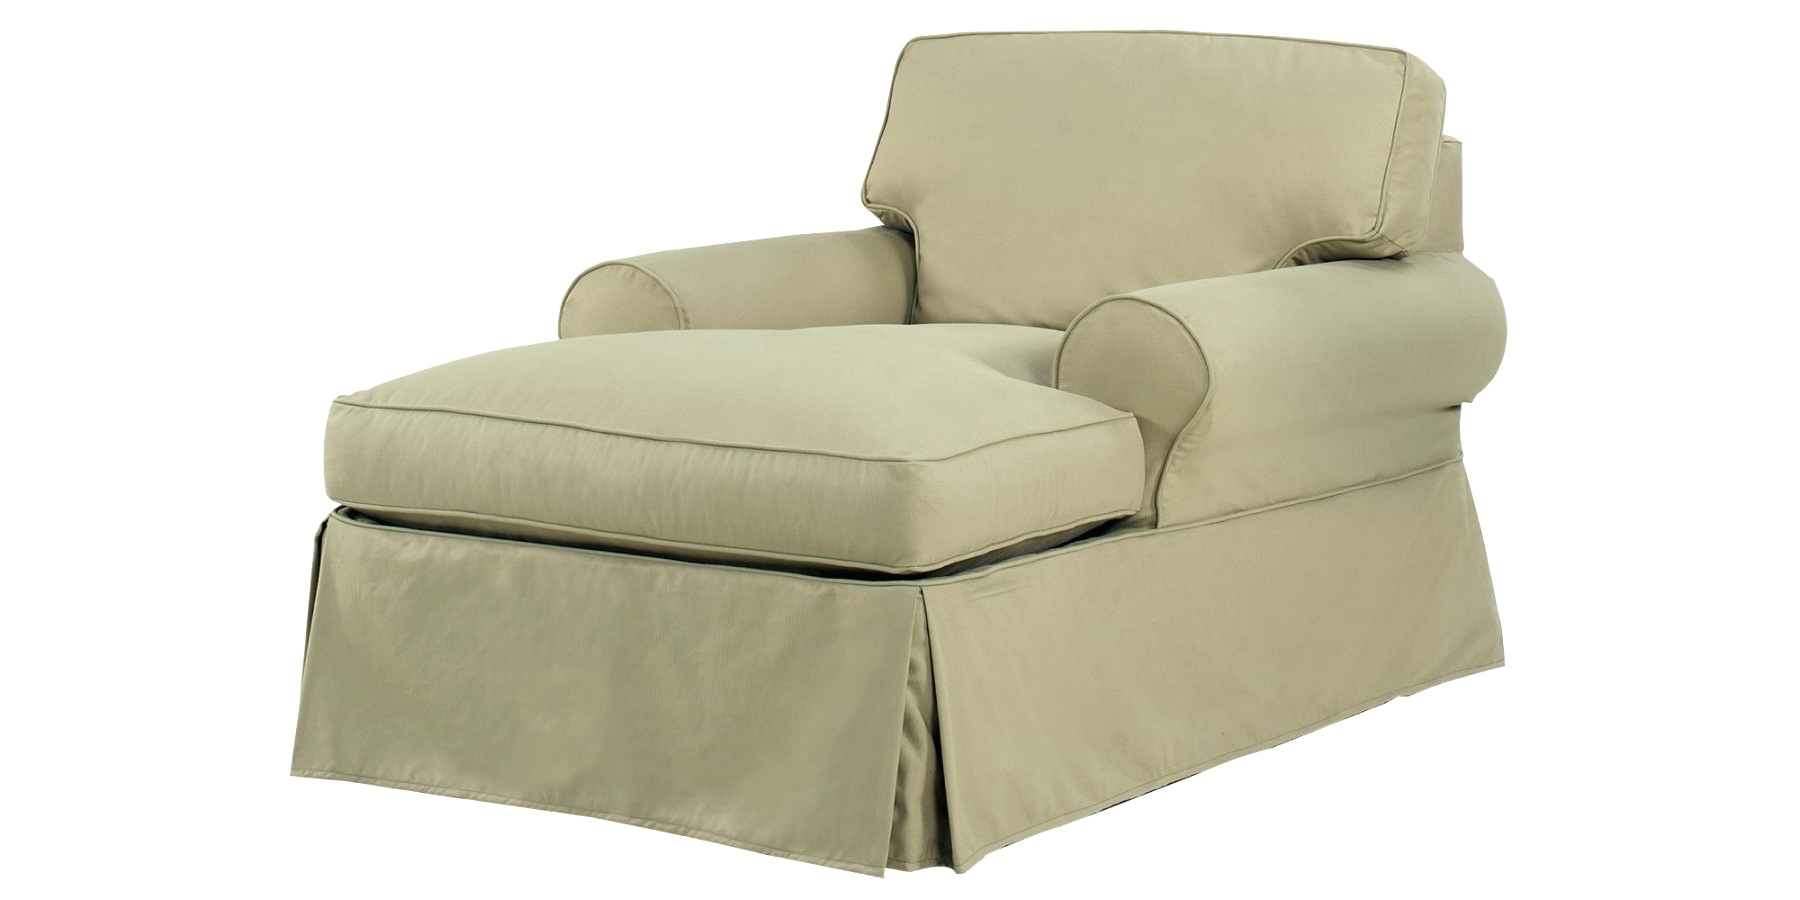 Widely Used Indoor Chaise Lounge Chair Covers • Chair Covers Ideas In Indoor Chaise Lounge Slipcovers (View 9 of 15)